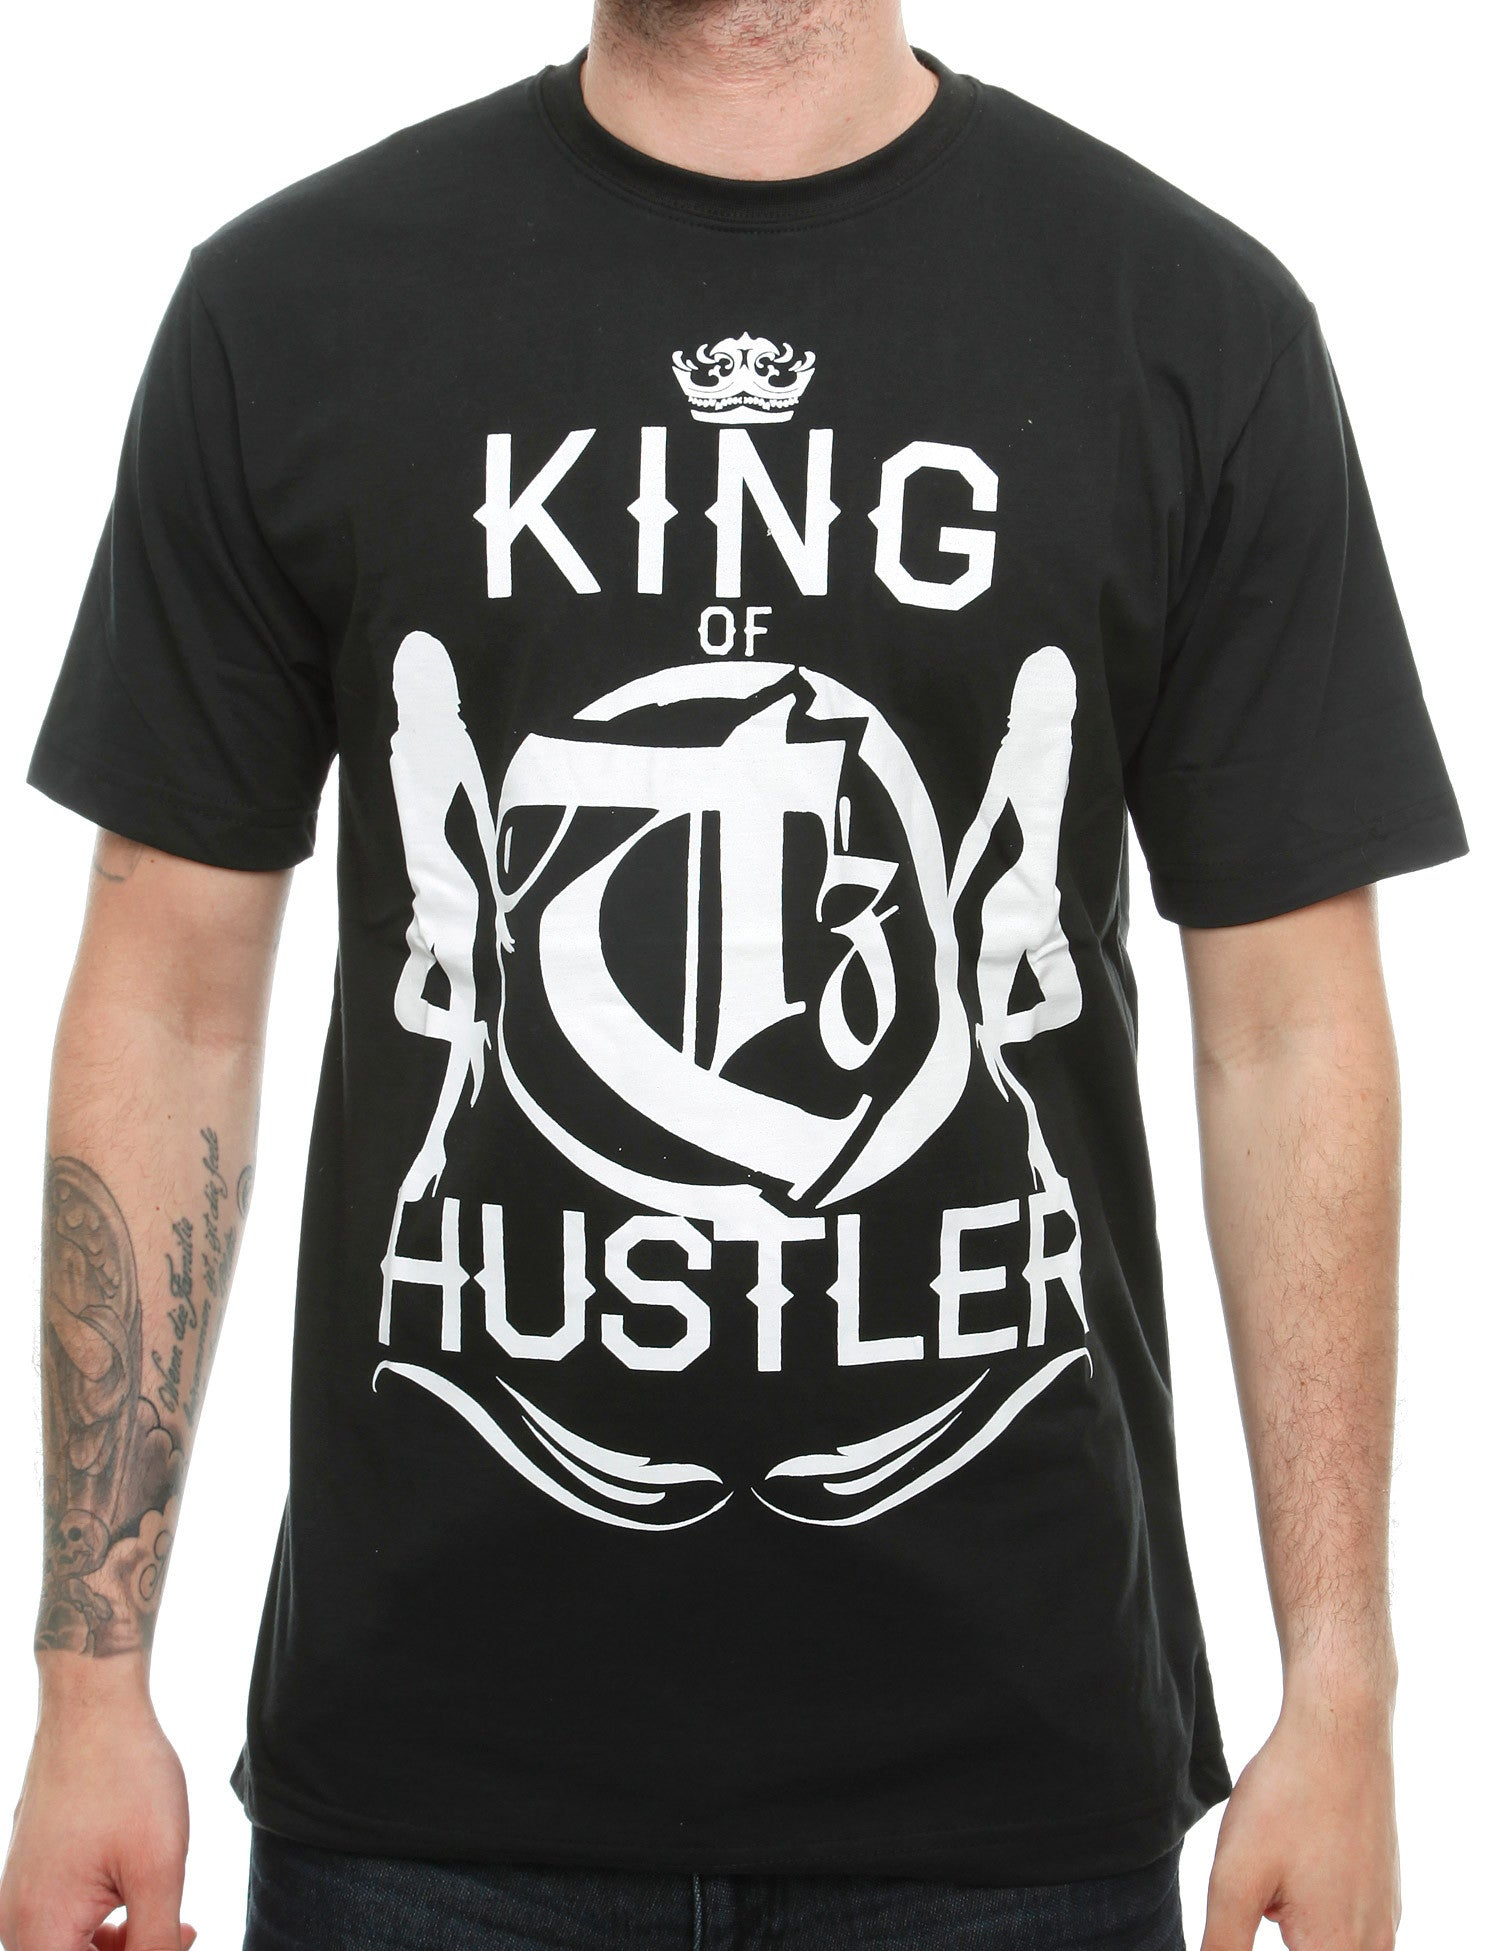 Townz King Hustle T-Shirt TNZ16-003 Black